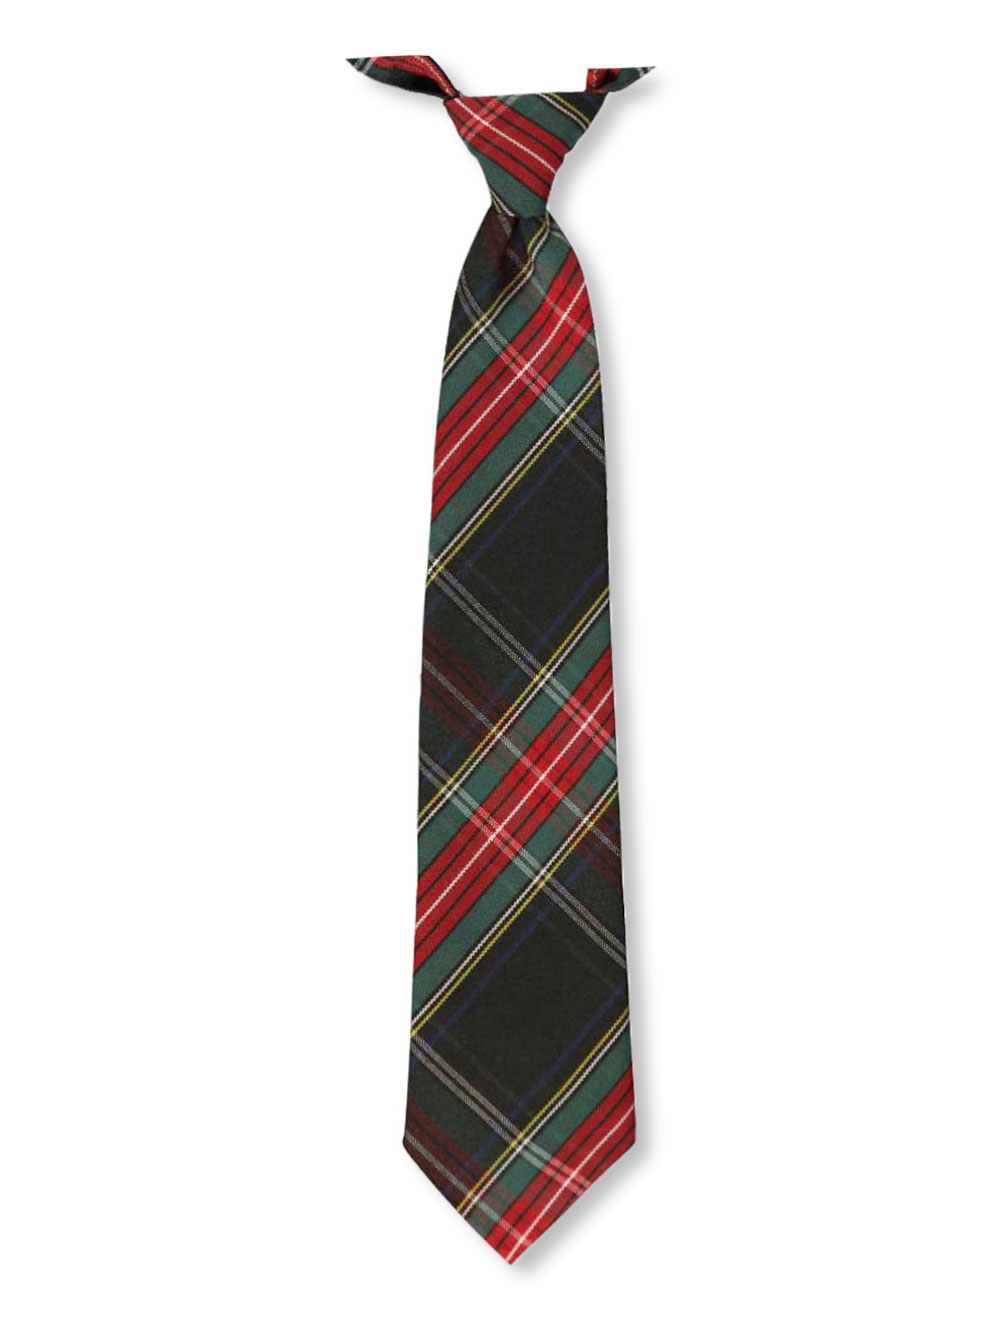 Image of Cookies Brand Adjustable Banded Necktie with Clip  blackredwhitegold plaid 63 12